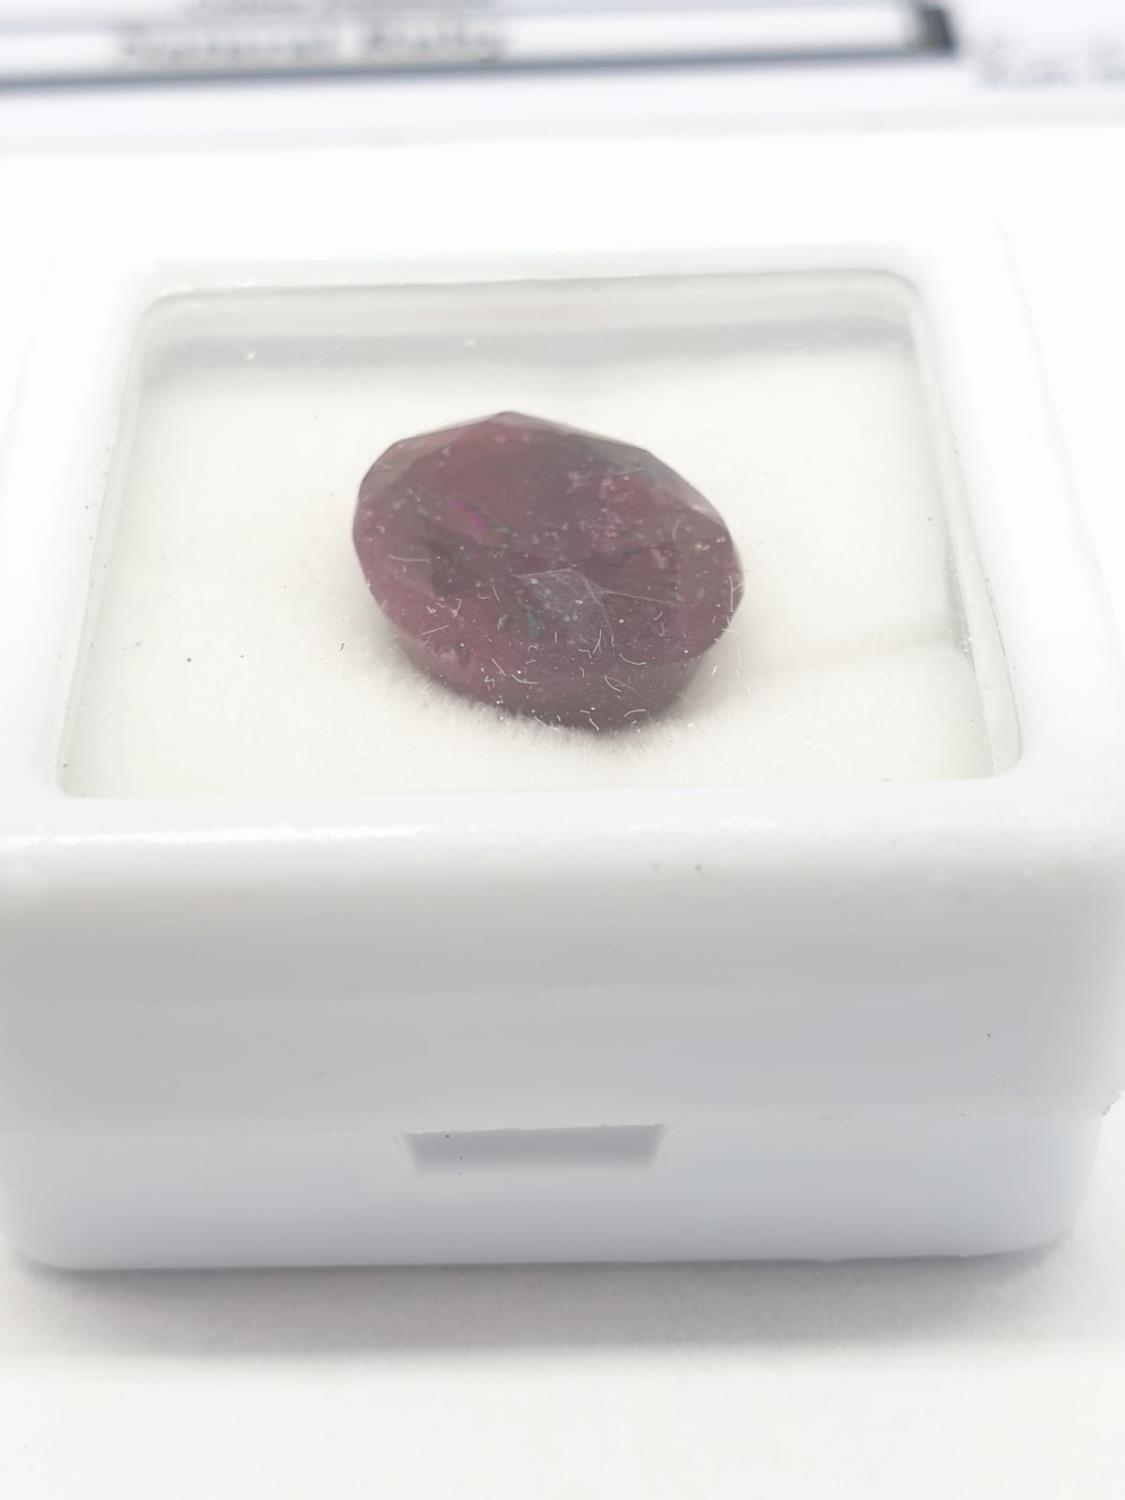 8.20 Cts Natural ruby. Oval mixed cut stone. Good colour. GLI certification included. - Image 3 of 4